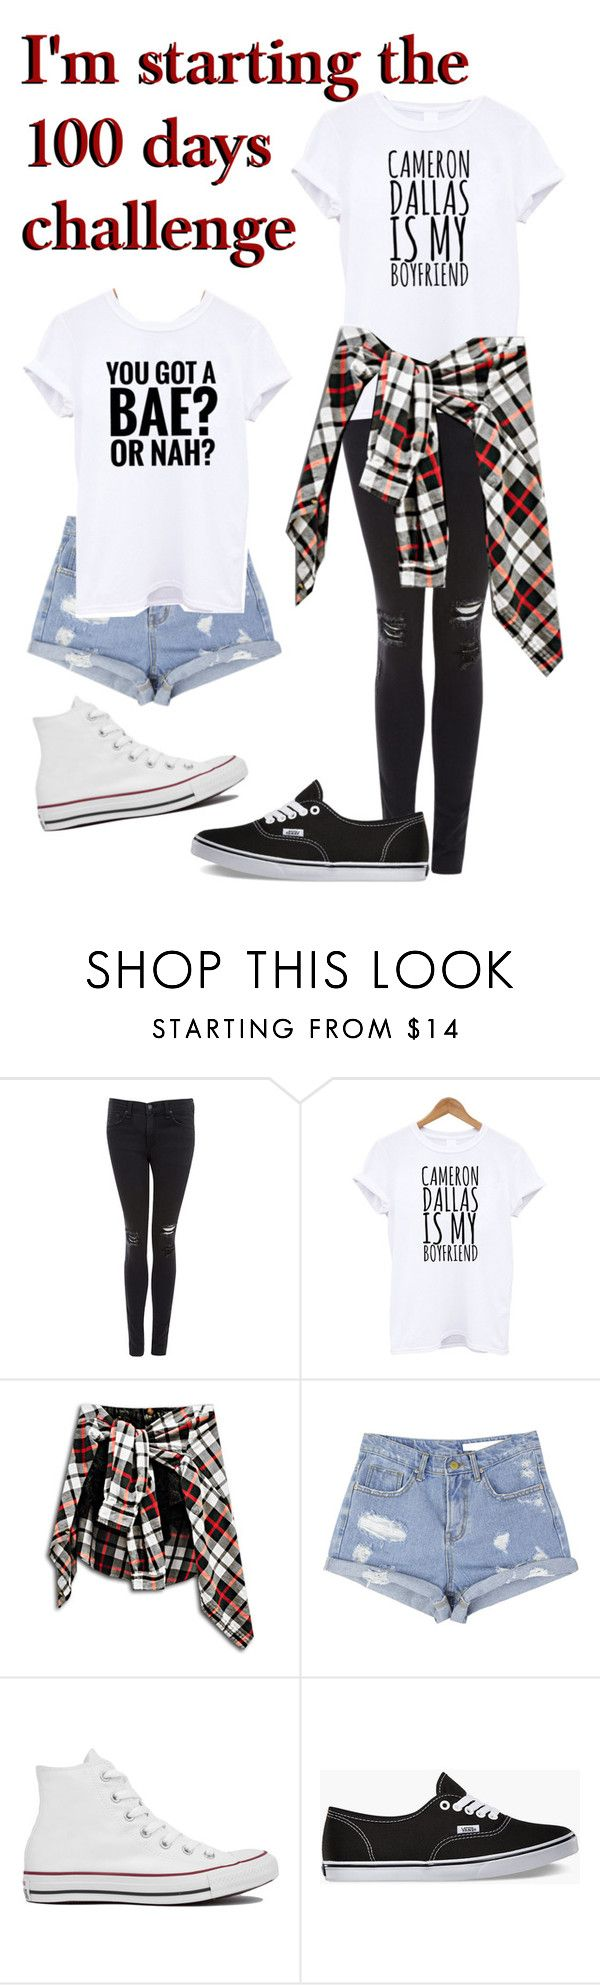 """Starting the 100 days challenge"" by roxouu ❤ liked on Polyvore featuring rag & bone/JEAN, Converse, Vans, women's clothing, women, female, woman, misses and juniors"